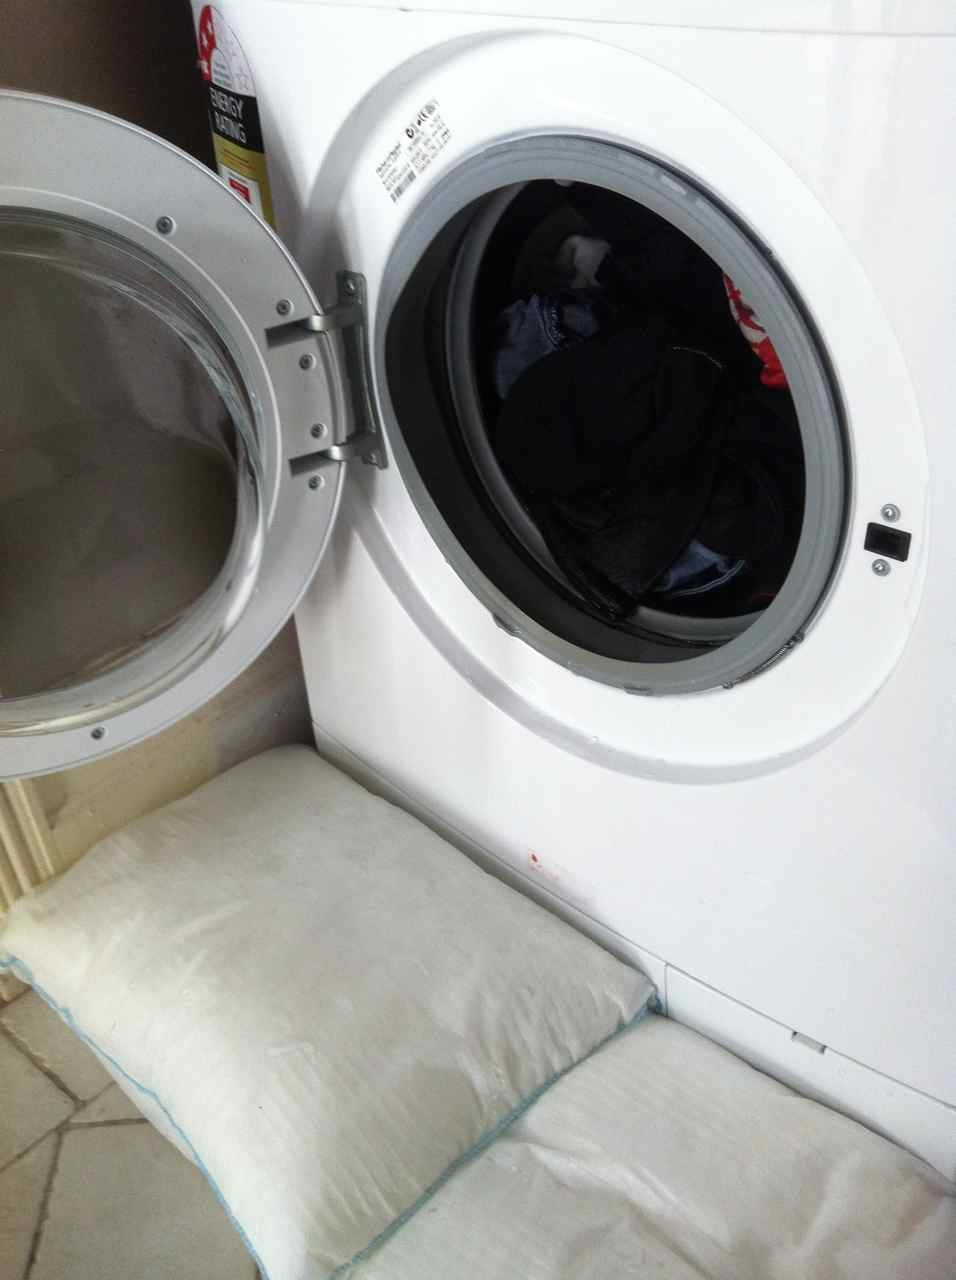 Plumbing home emergency washing machine.jpg